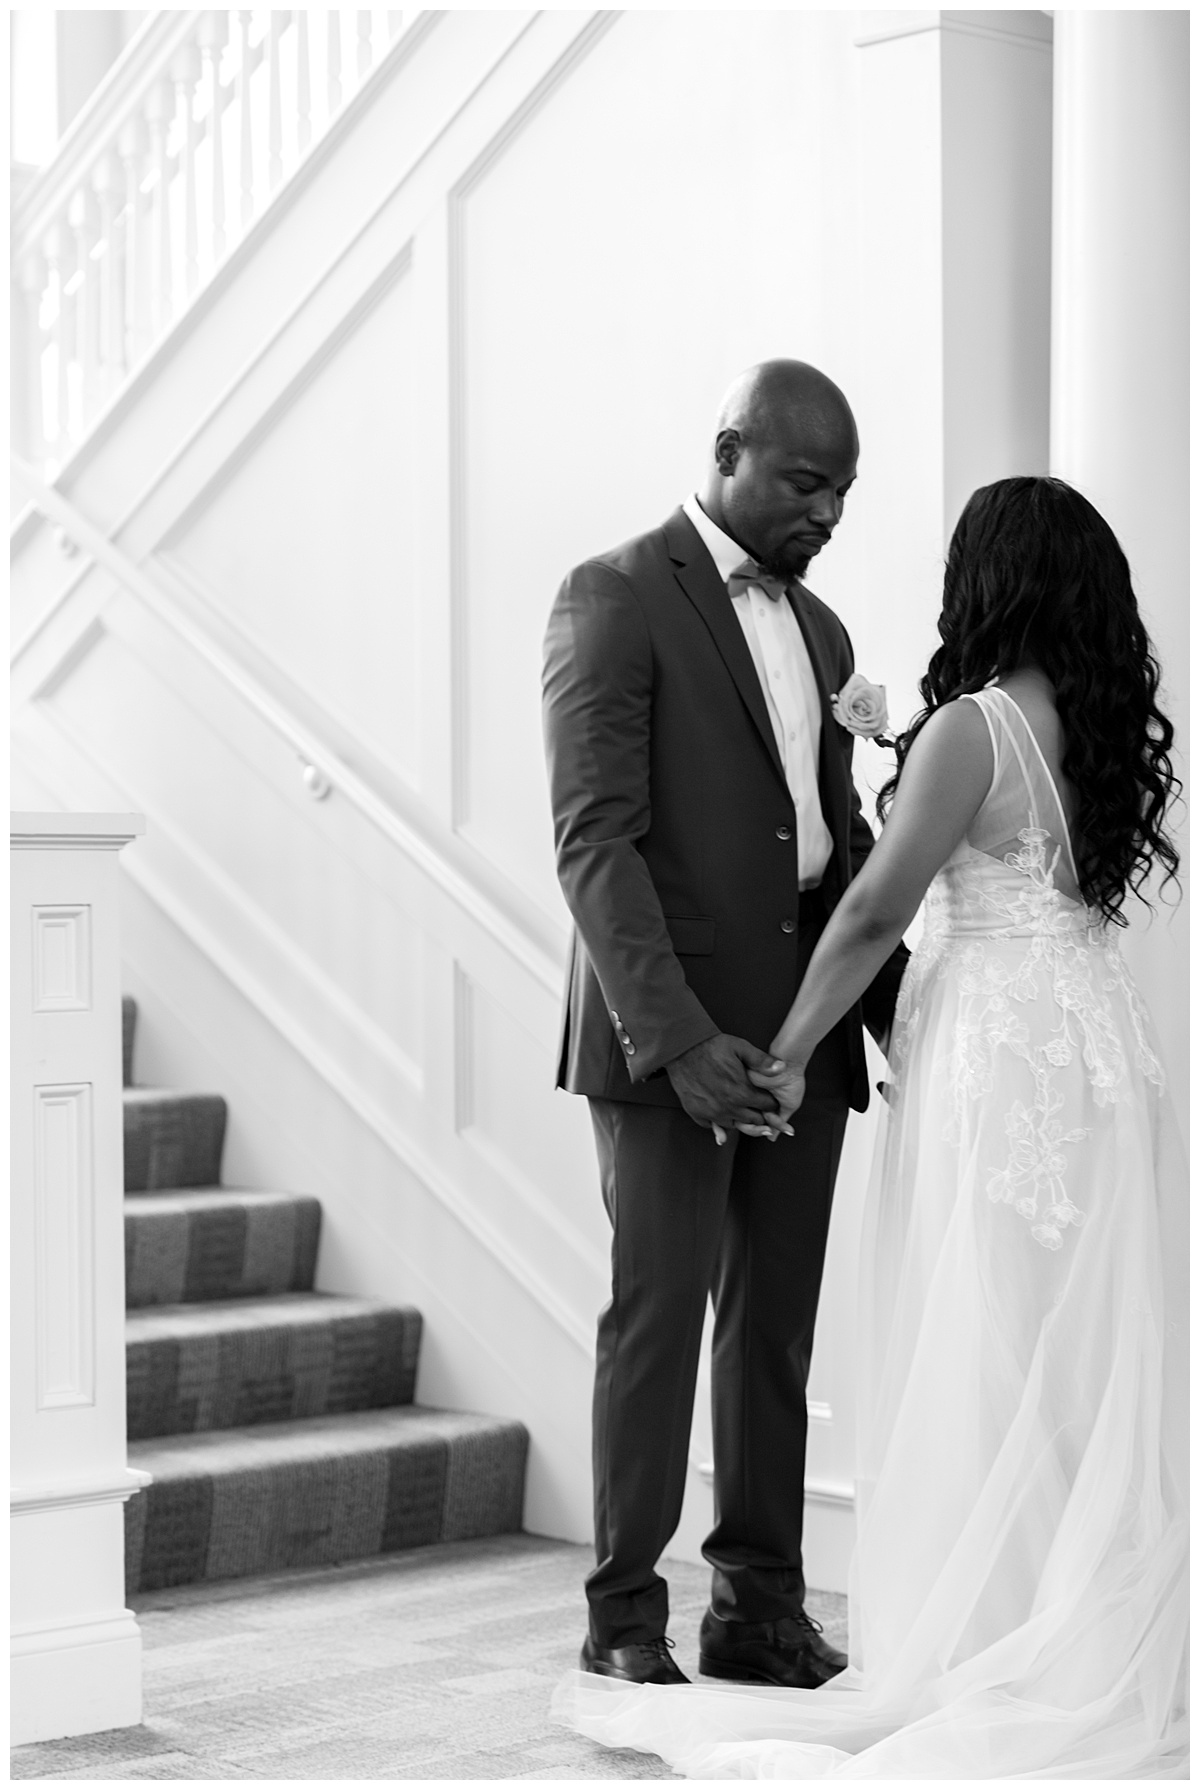 Bride and groom first look at gordon-conwell theological seminary.jpg